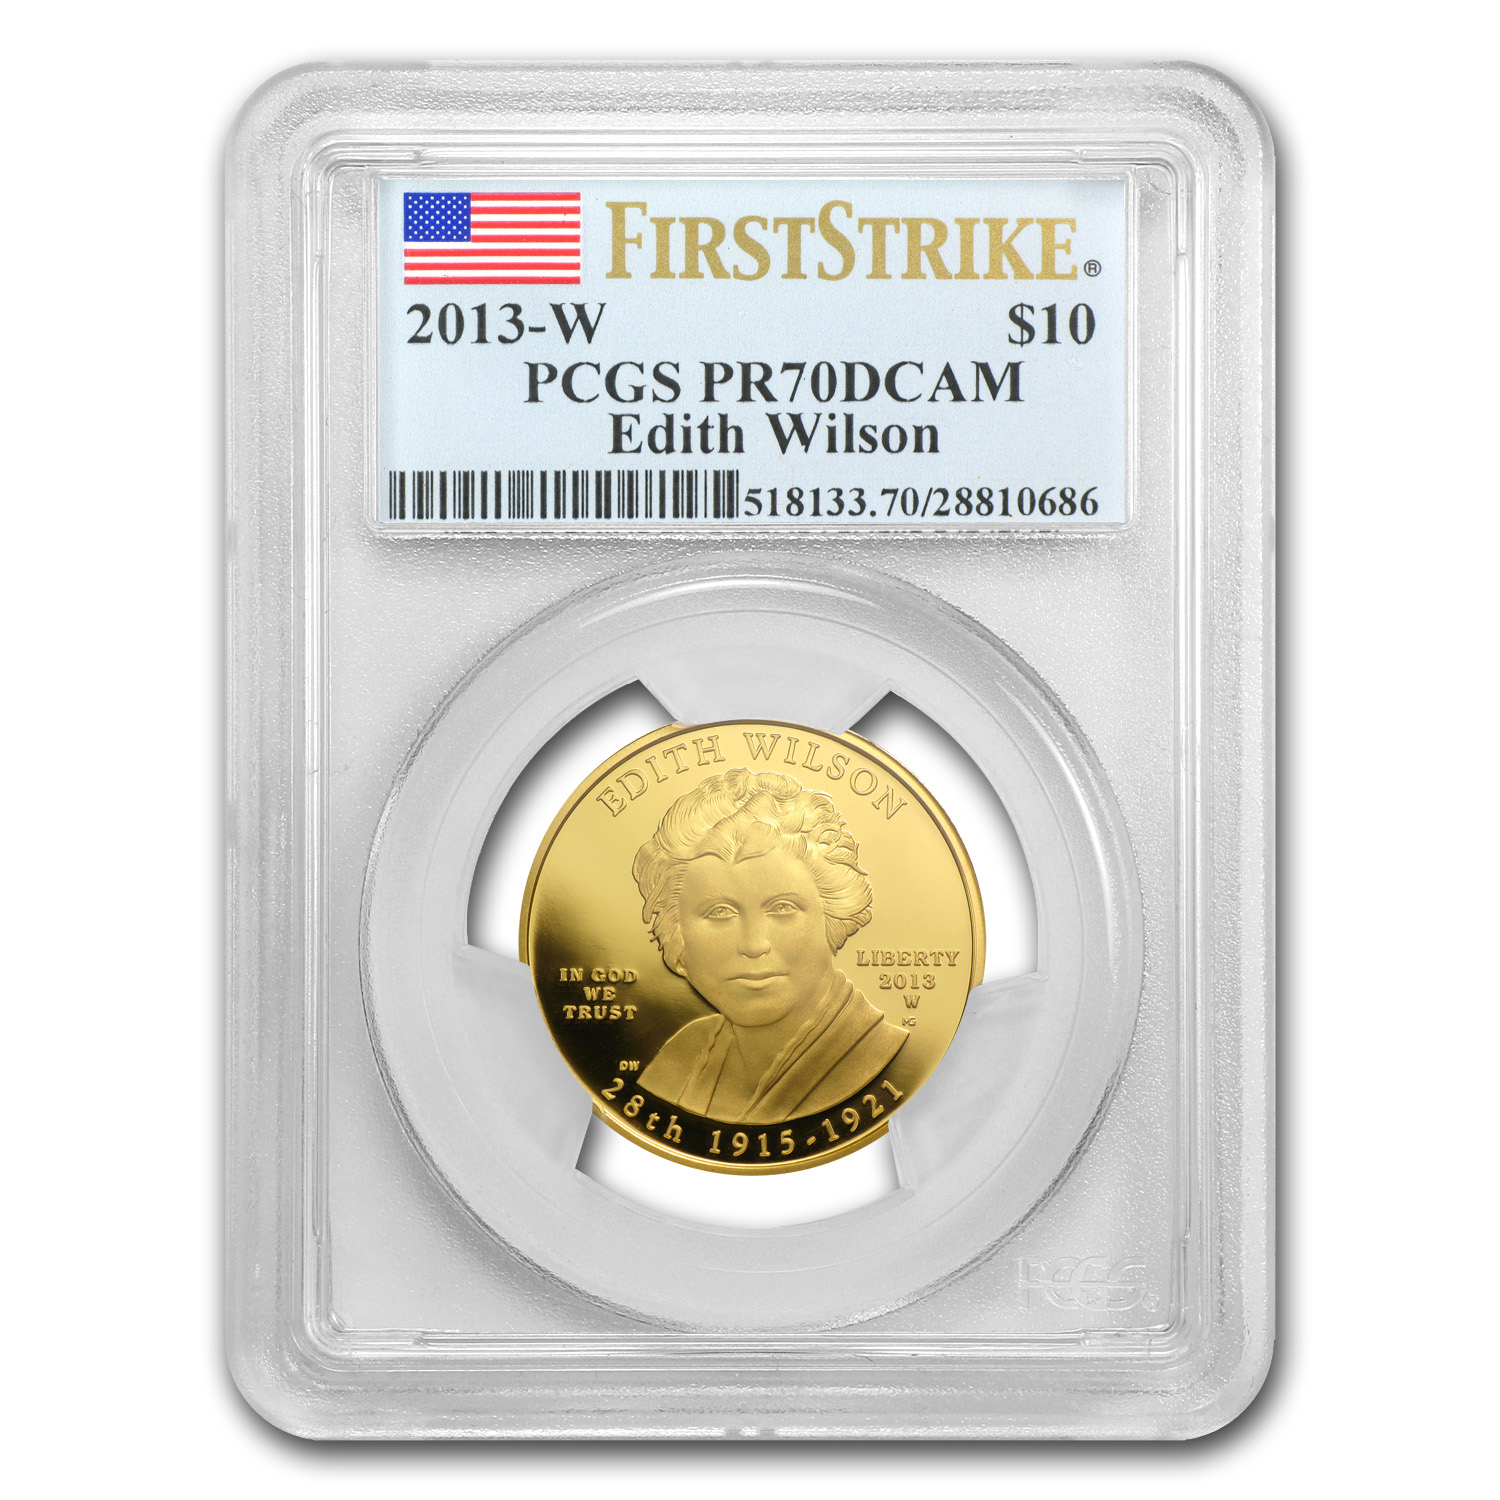 2013-W 1/2 oz Proof Gold Edith Wilson PR-70 PCGS (FS)